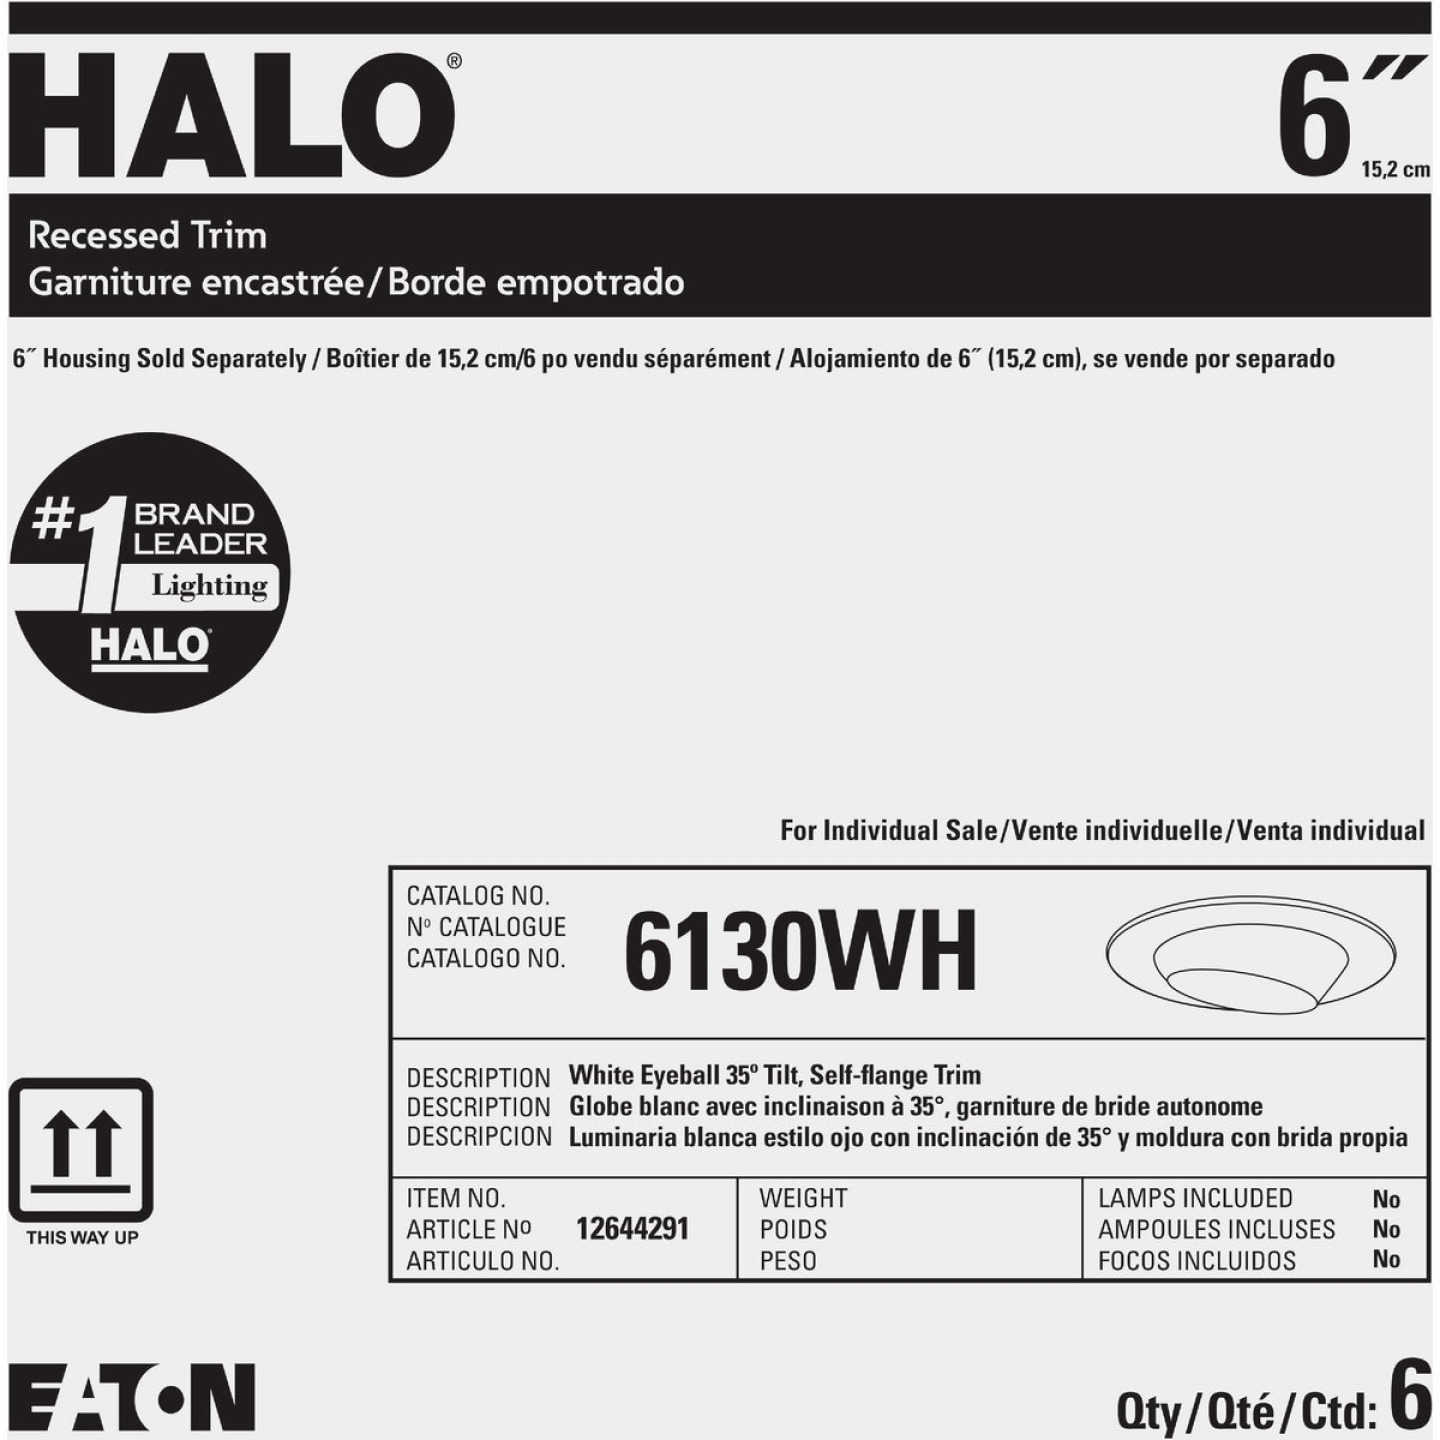 Halo 6 In. White Self-Flanged Eyeball Recessed Light Trim Image 2